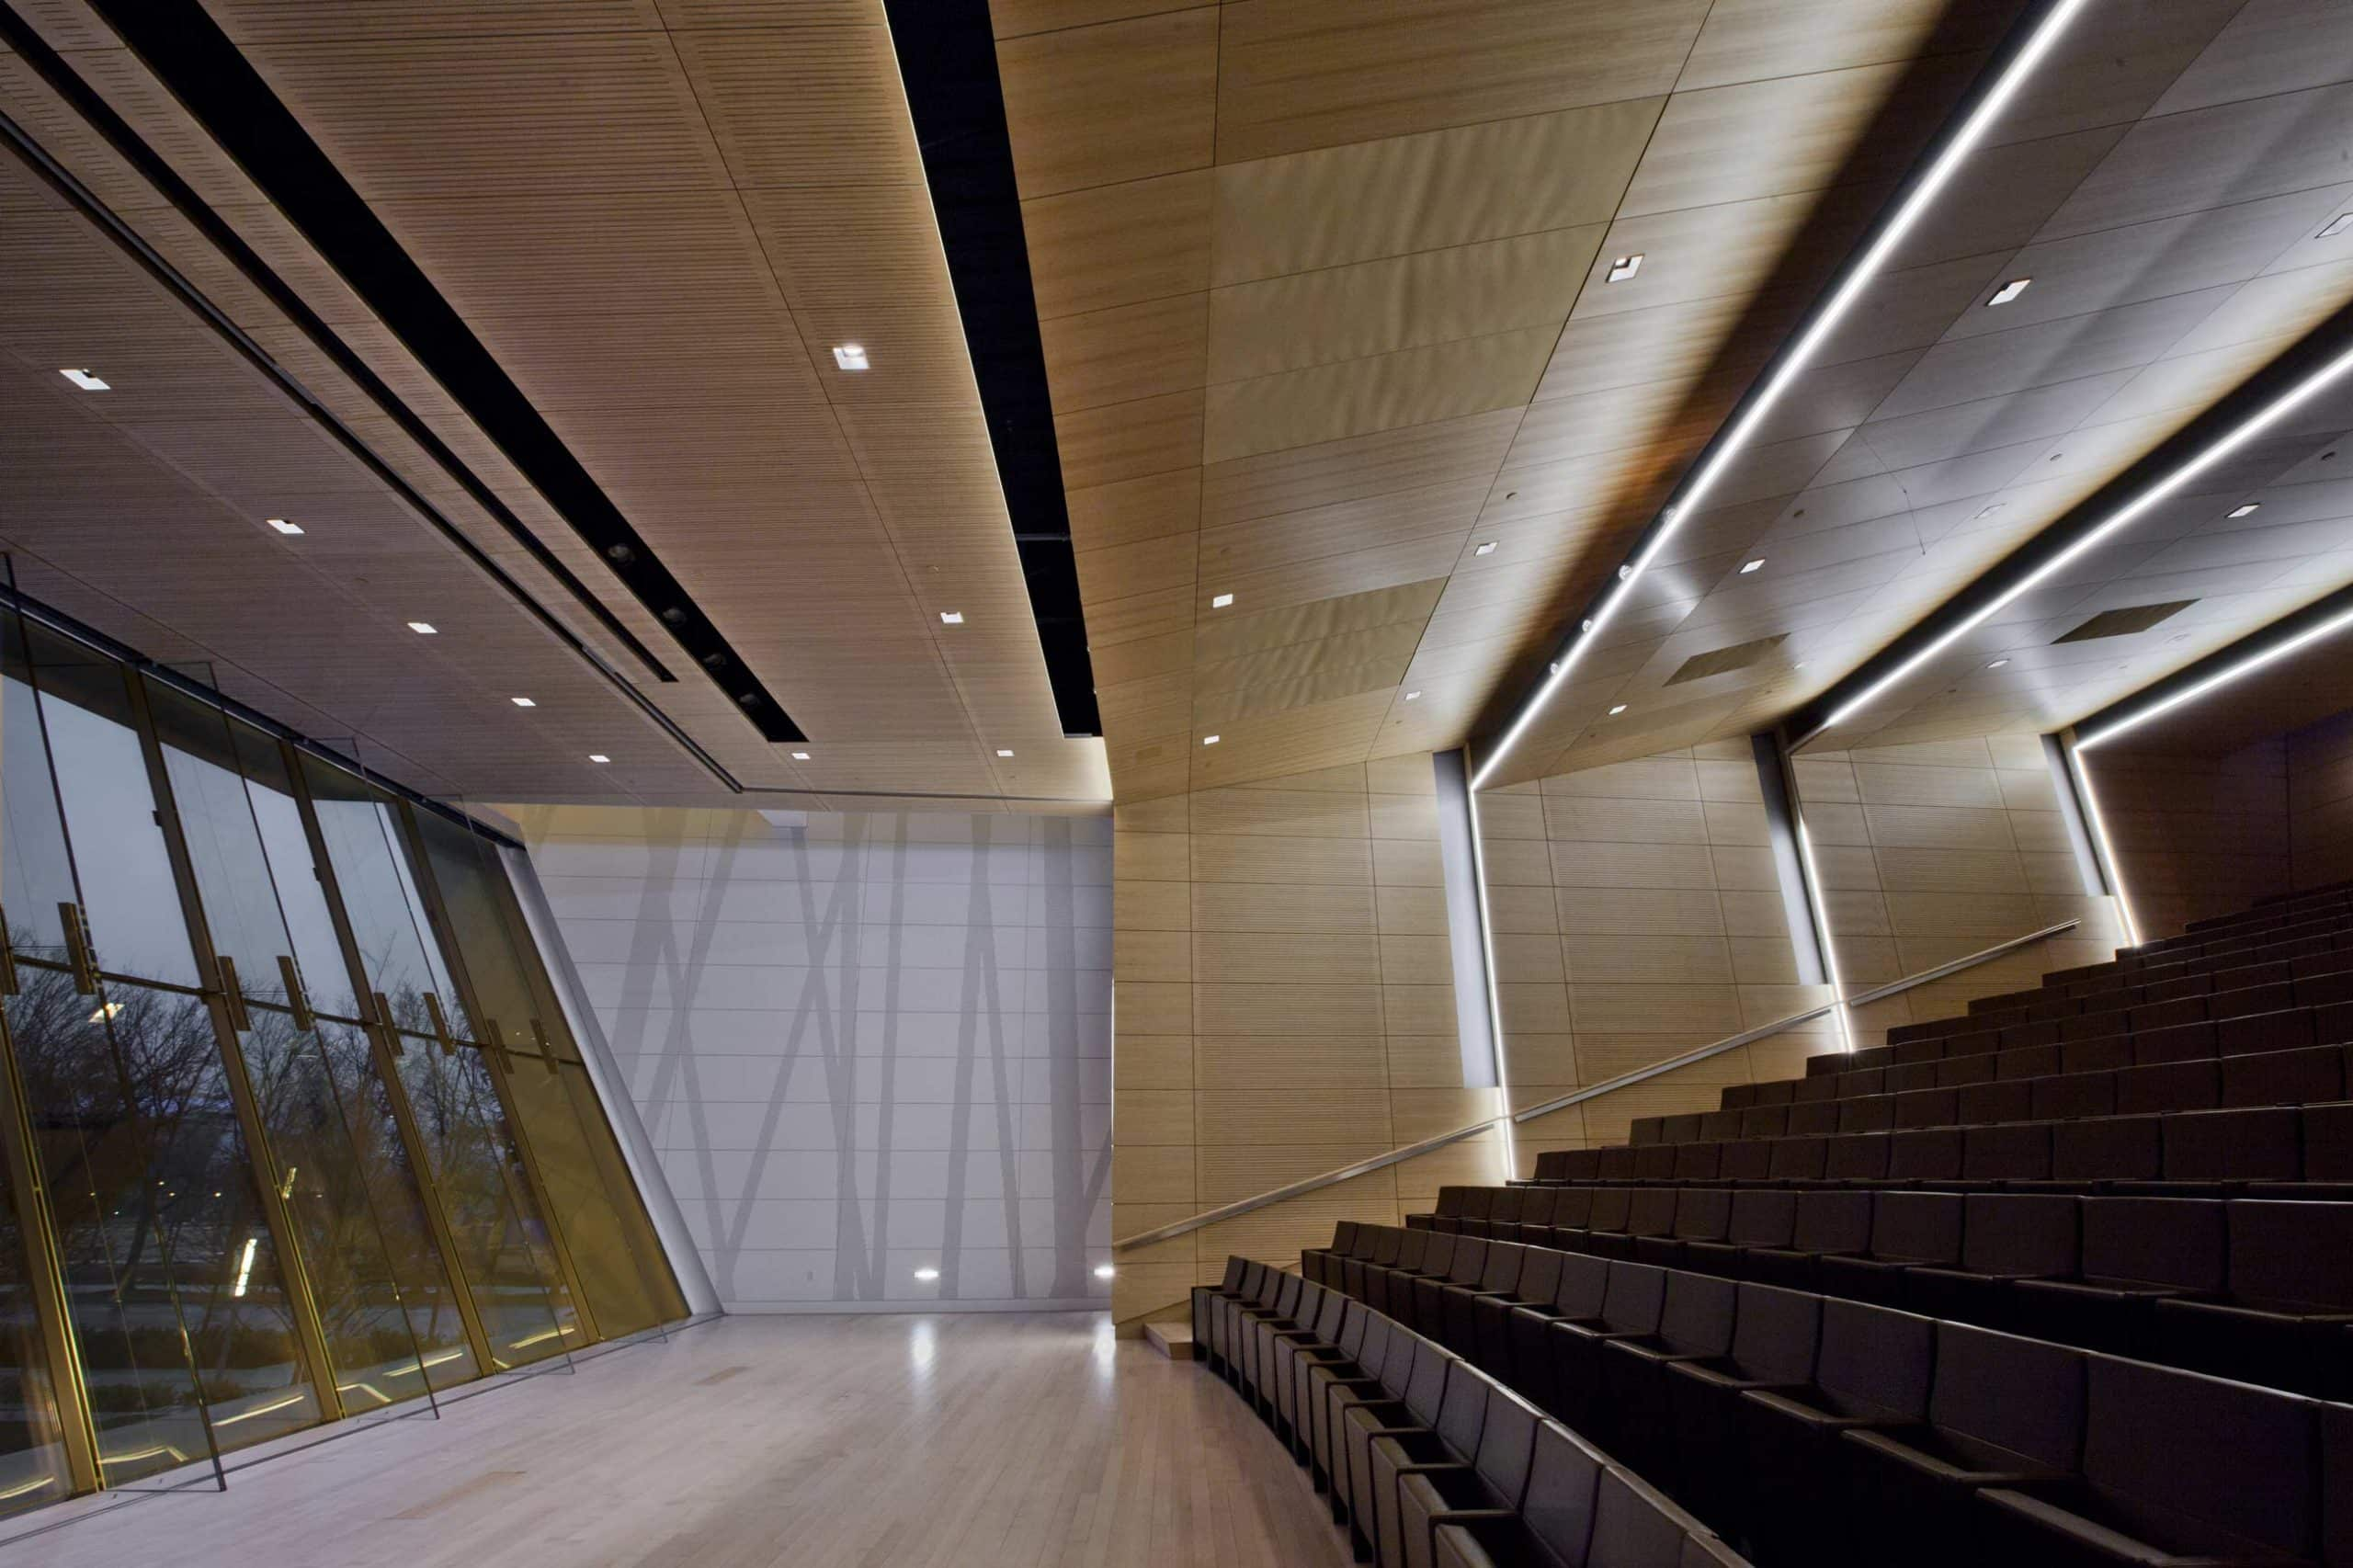 Topakustik usa acoustical wood products and systems for Interior design schools in oklahoma